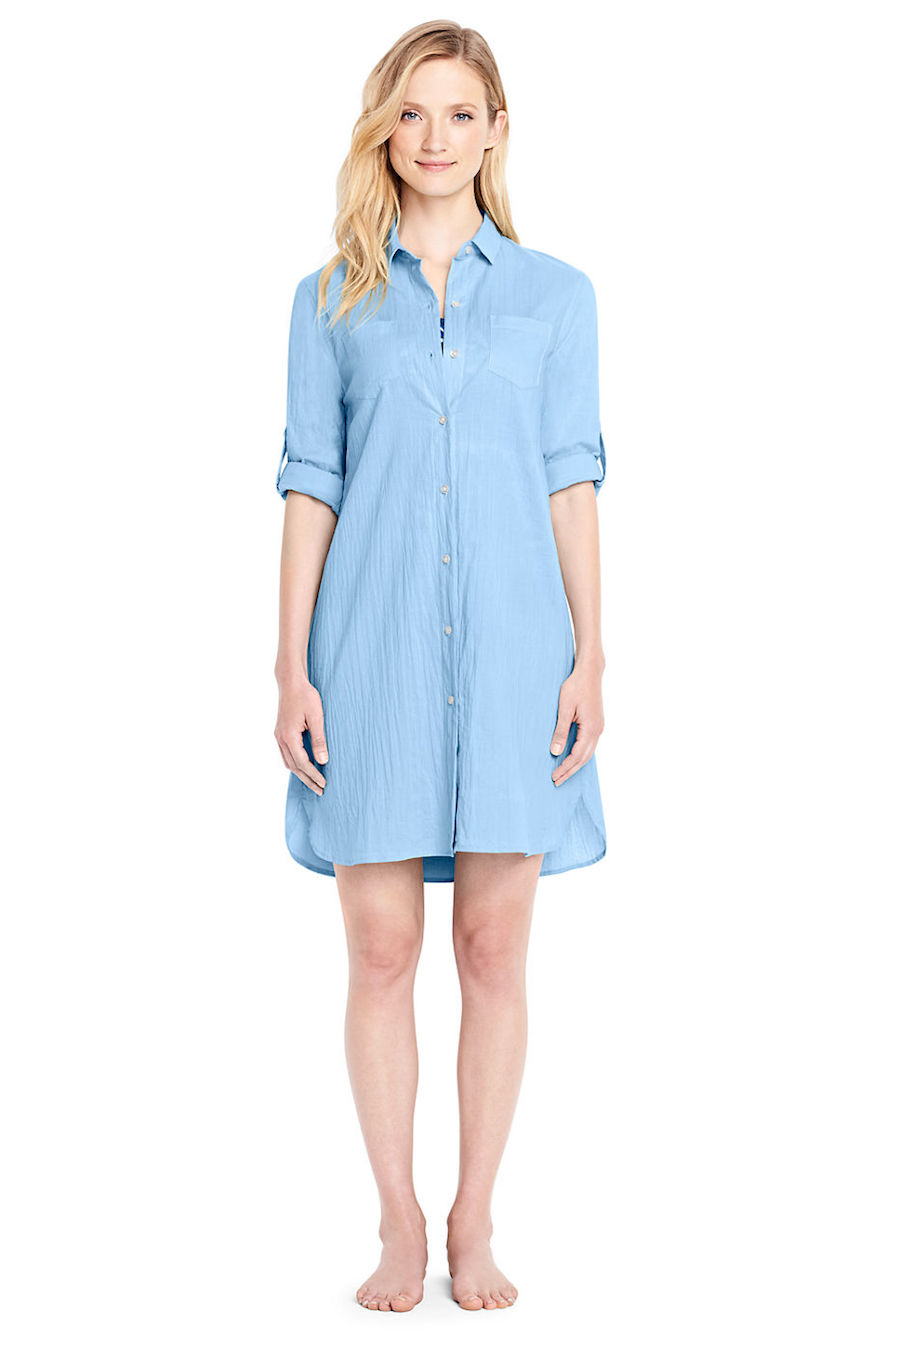 Cool pool coverups for moms: Boyfriend shirtdress at Lands' End